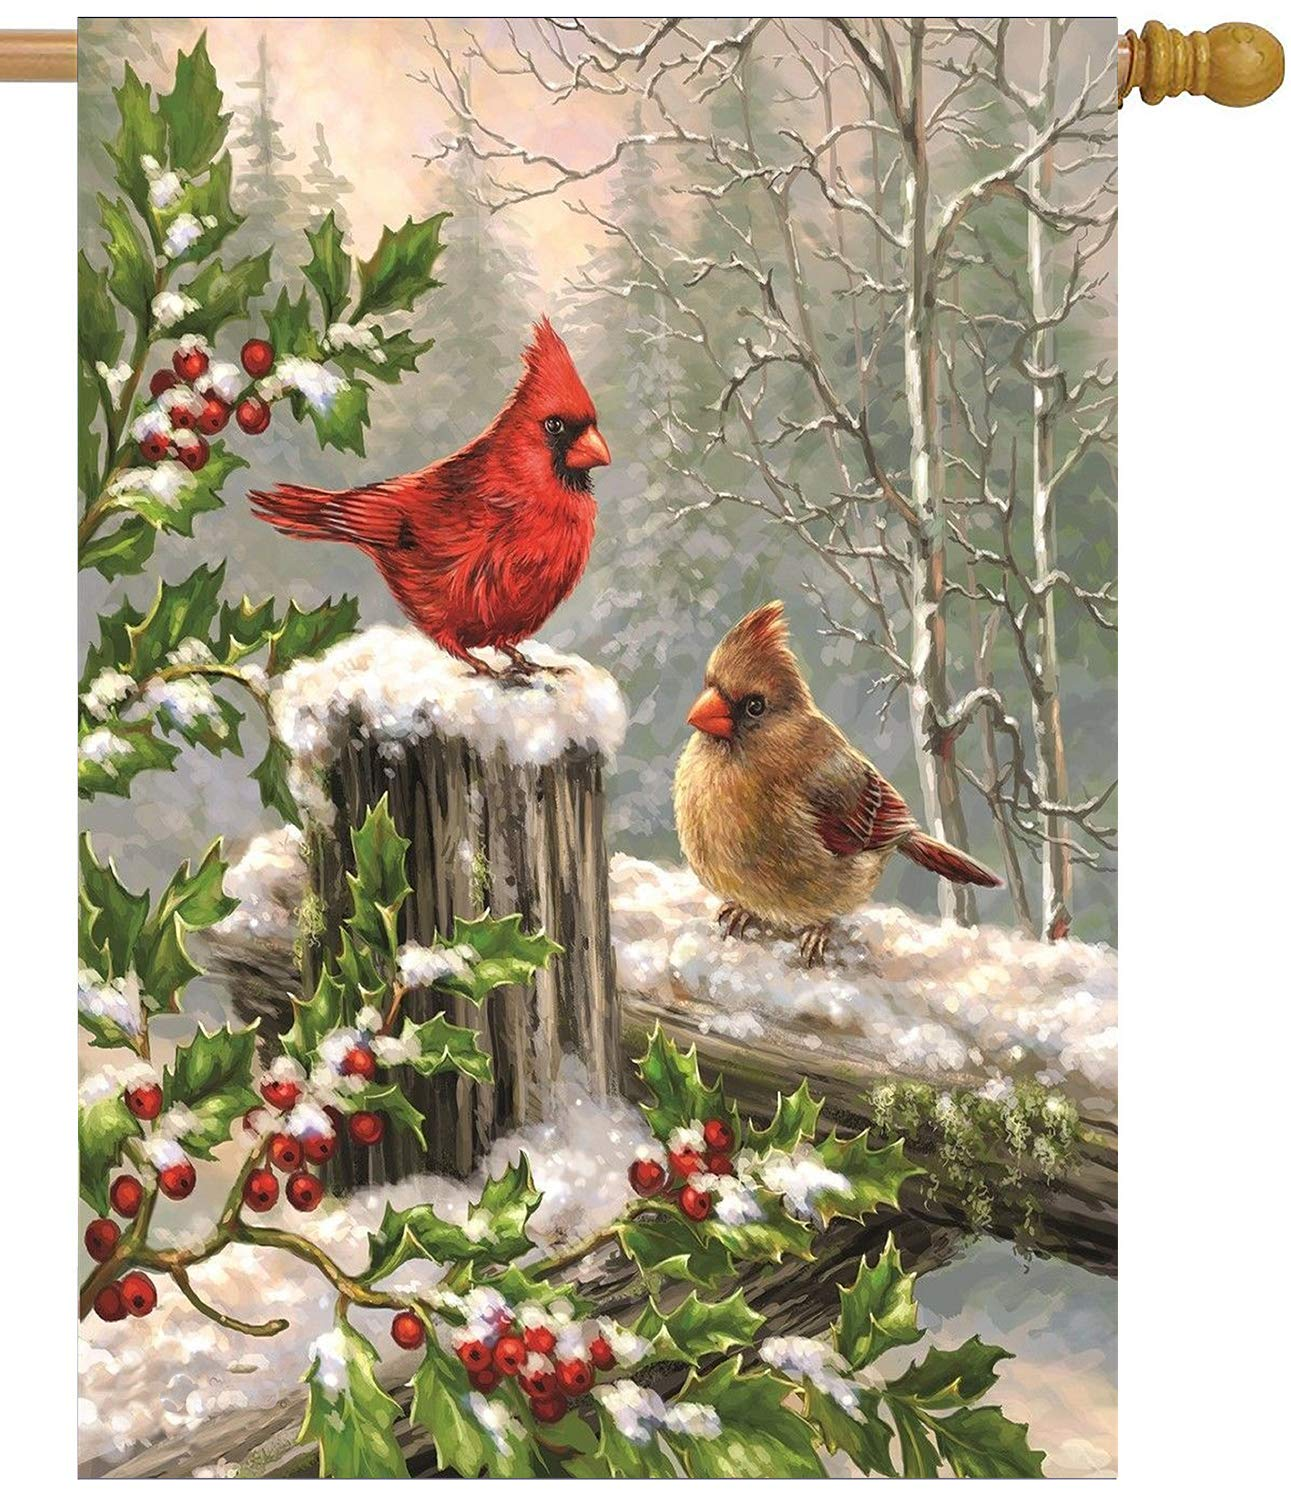 Wamika Merry Christmas House Flags 28 x 40 Double Sided, Cardinal Red Bird Holly Berry Branches Snow Welcome Winter Holiday Yard Outdoor Garden Flag Banner for Party Home Christmas Decorations